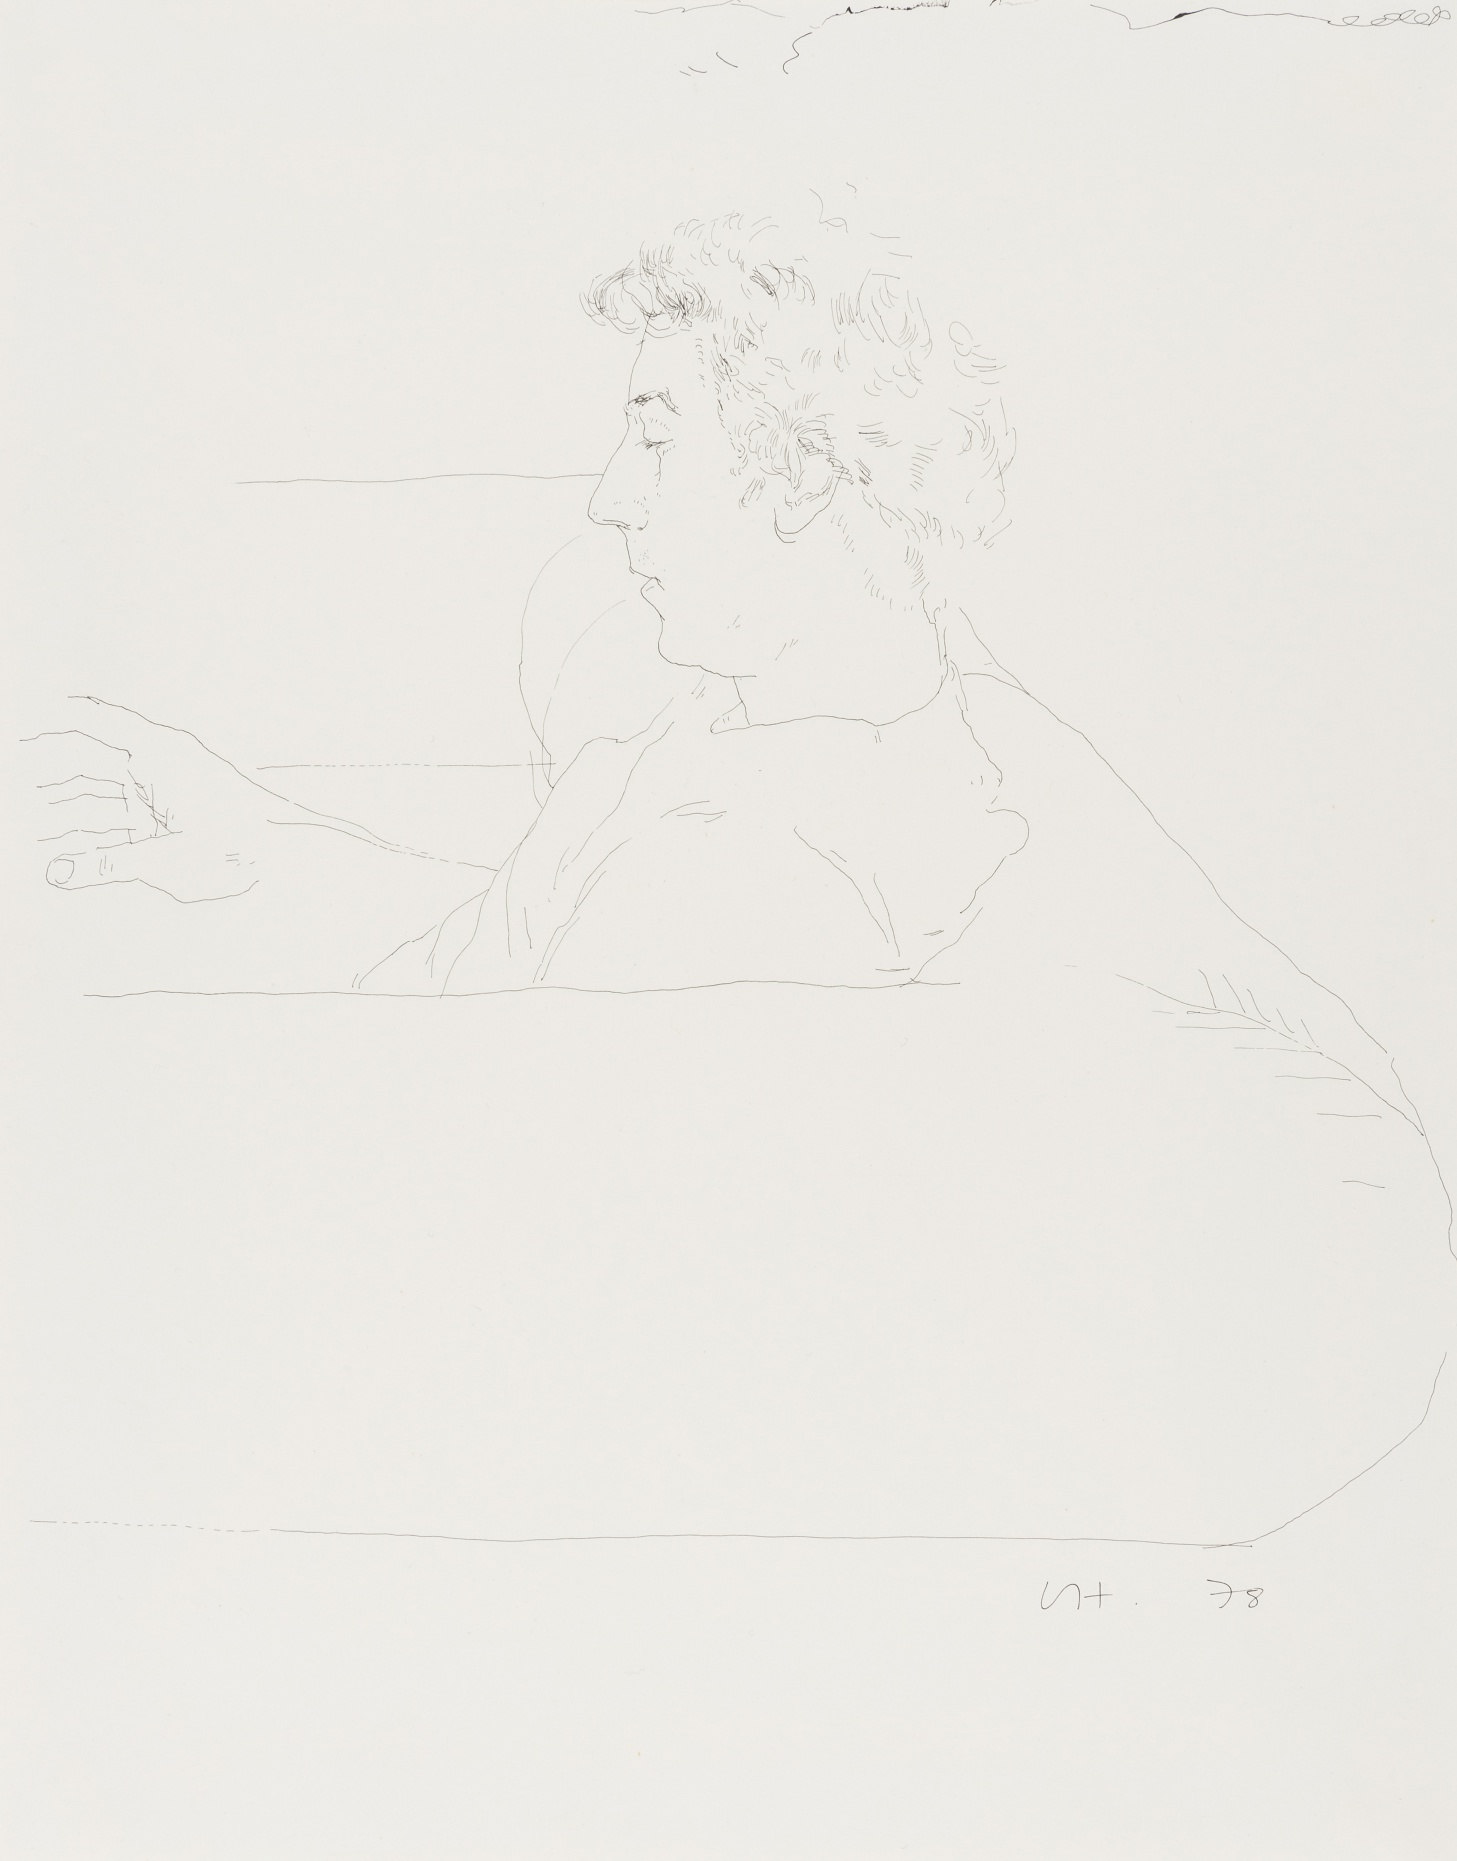 David Hockney, Gregory on a sofa, 